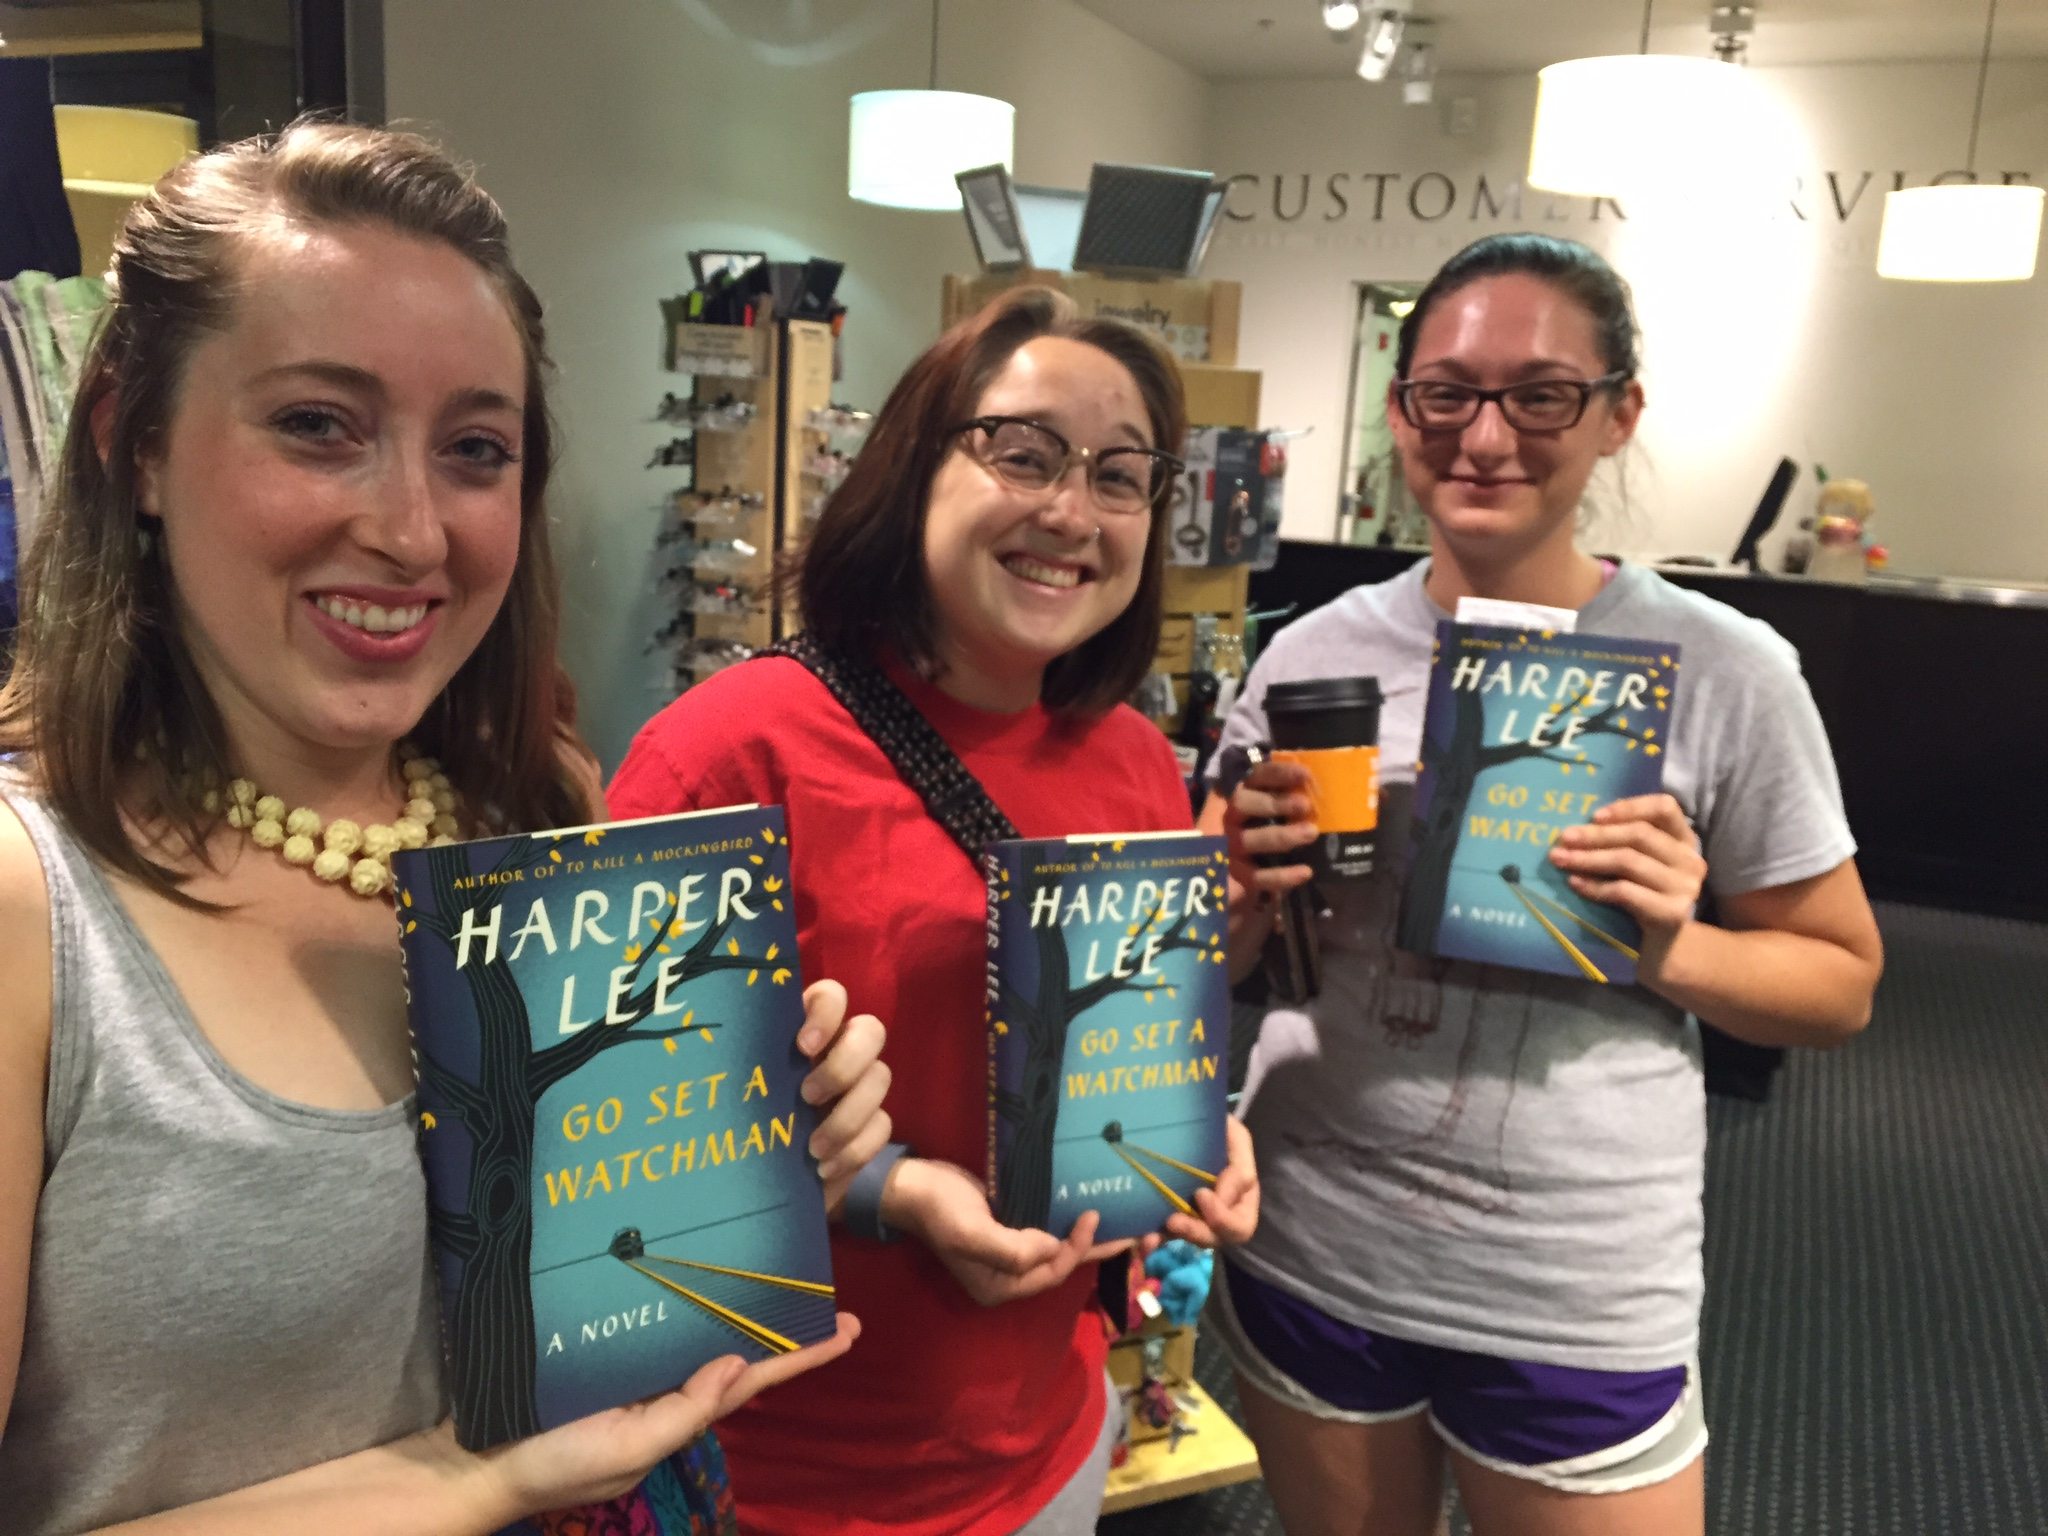 Me and my friends at Books-a-Million for the midnight release of  Go Set a Watchman !From left to right it's me (Mandy Shunnarah), Kyrsten Matthews, and Allie Curlette. We're pretty pleased with ourselves! :D